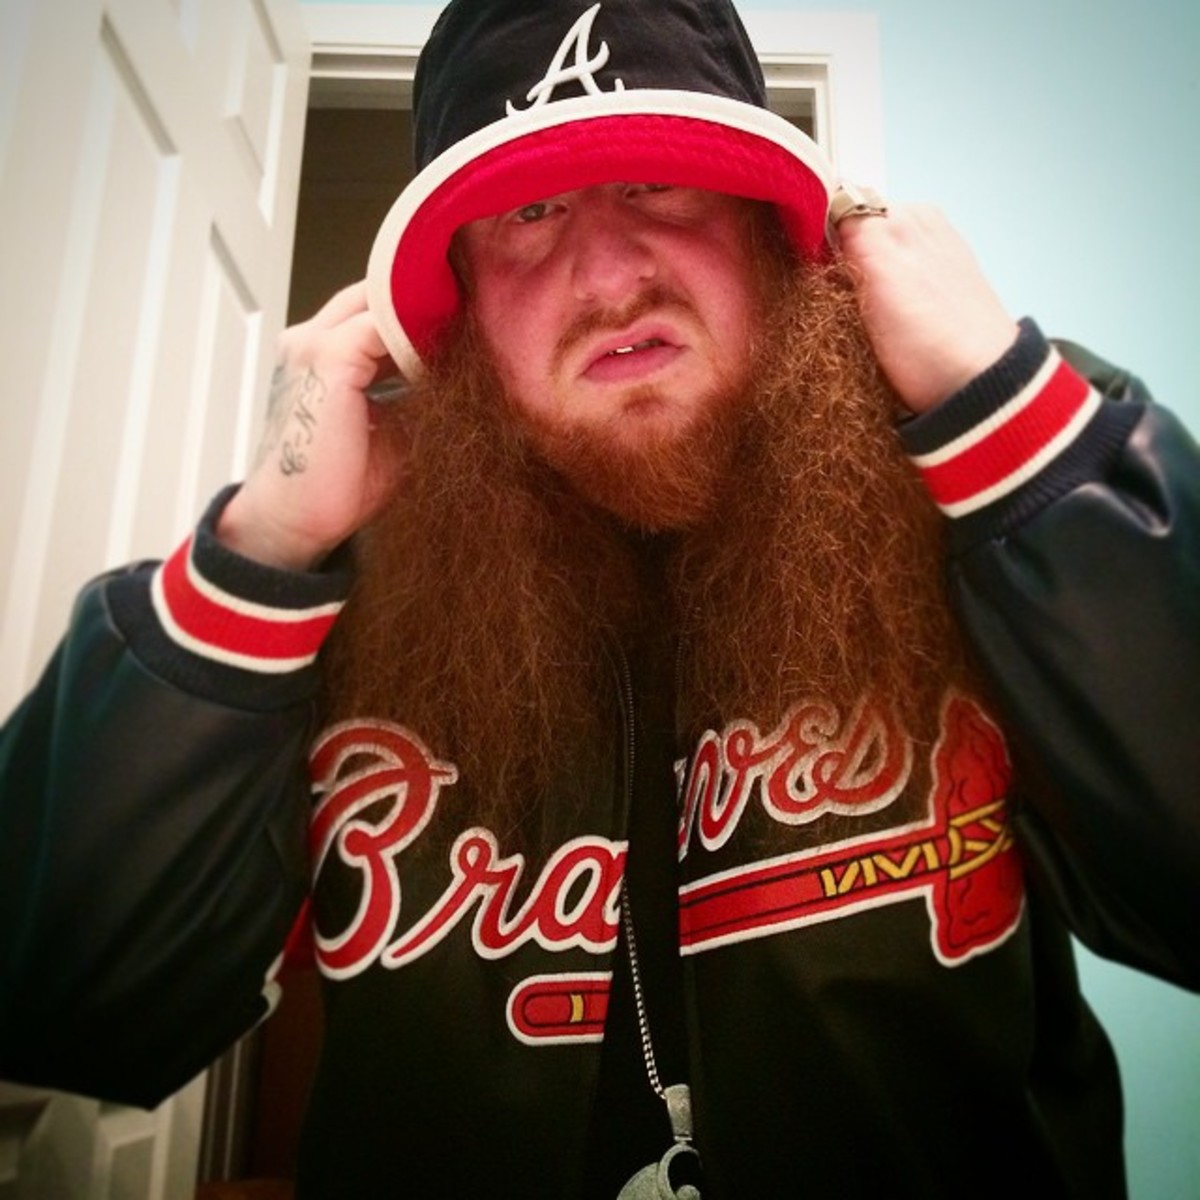 10 Of The Best Rittz Songs